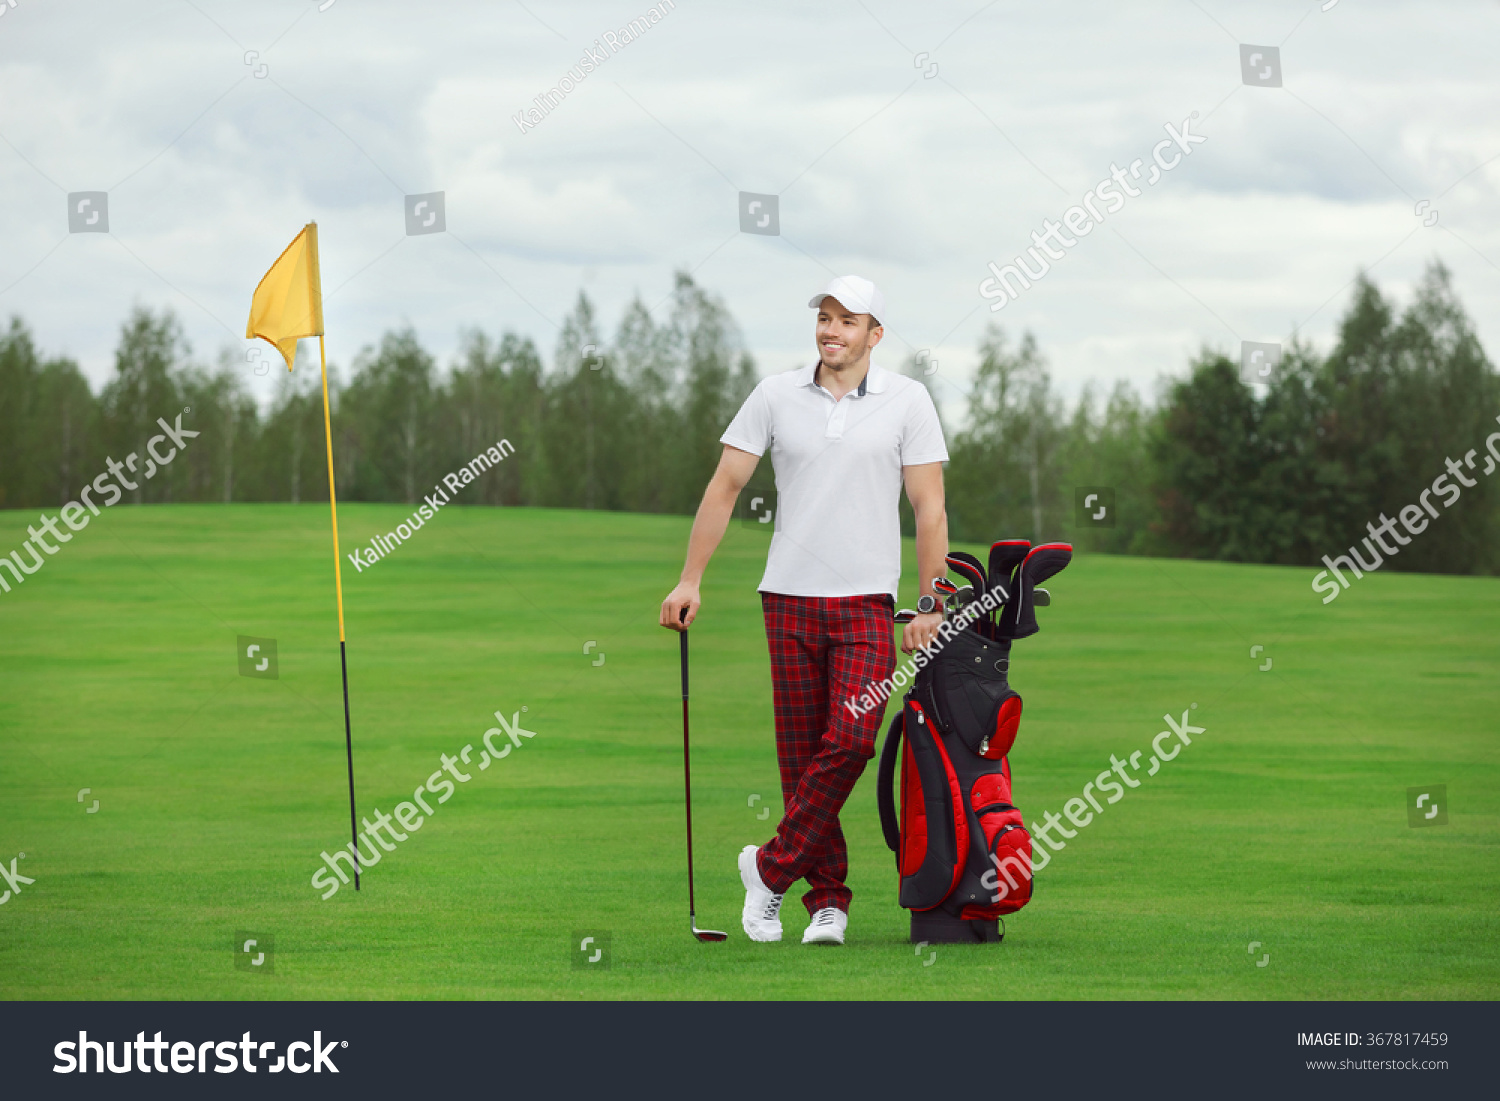 dea9bb90fd0 Golf is a style of living. Golf player in trucker hat walking and carrying  red